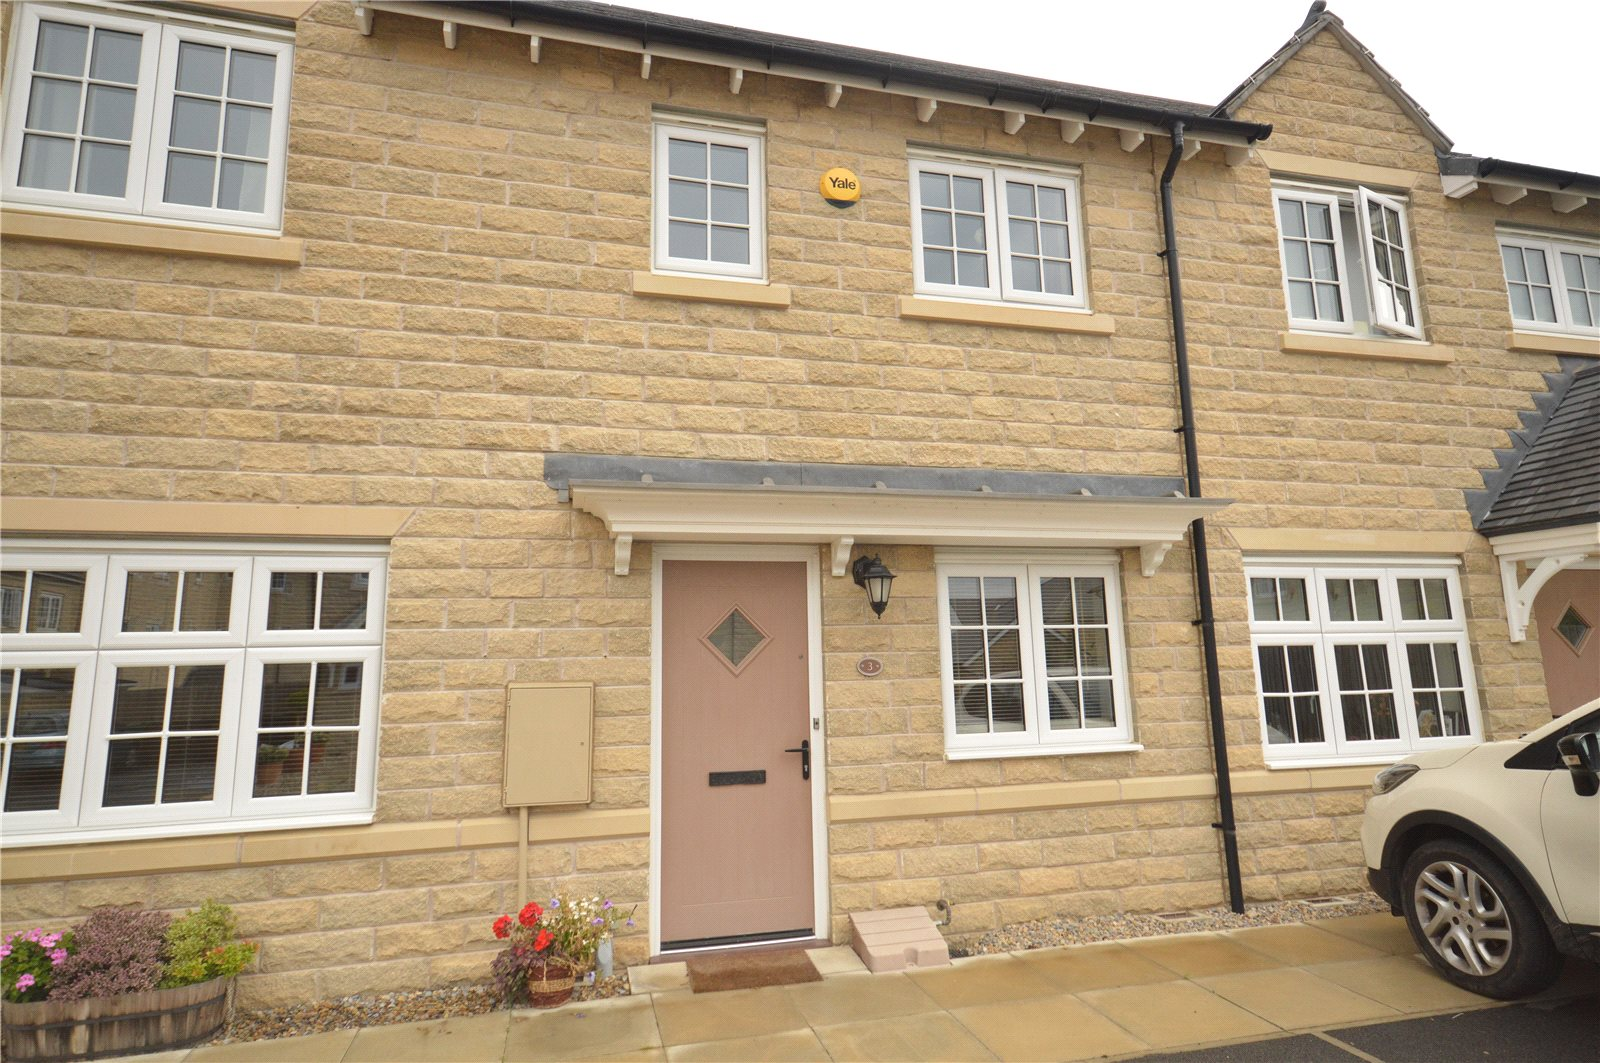 Property for sale in Horsforth exterior of two bed terraced house